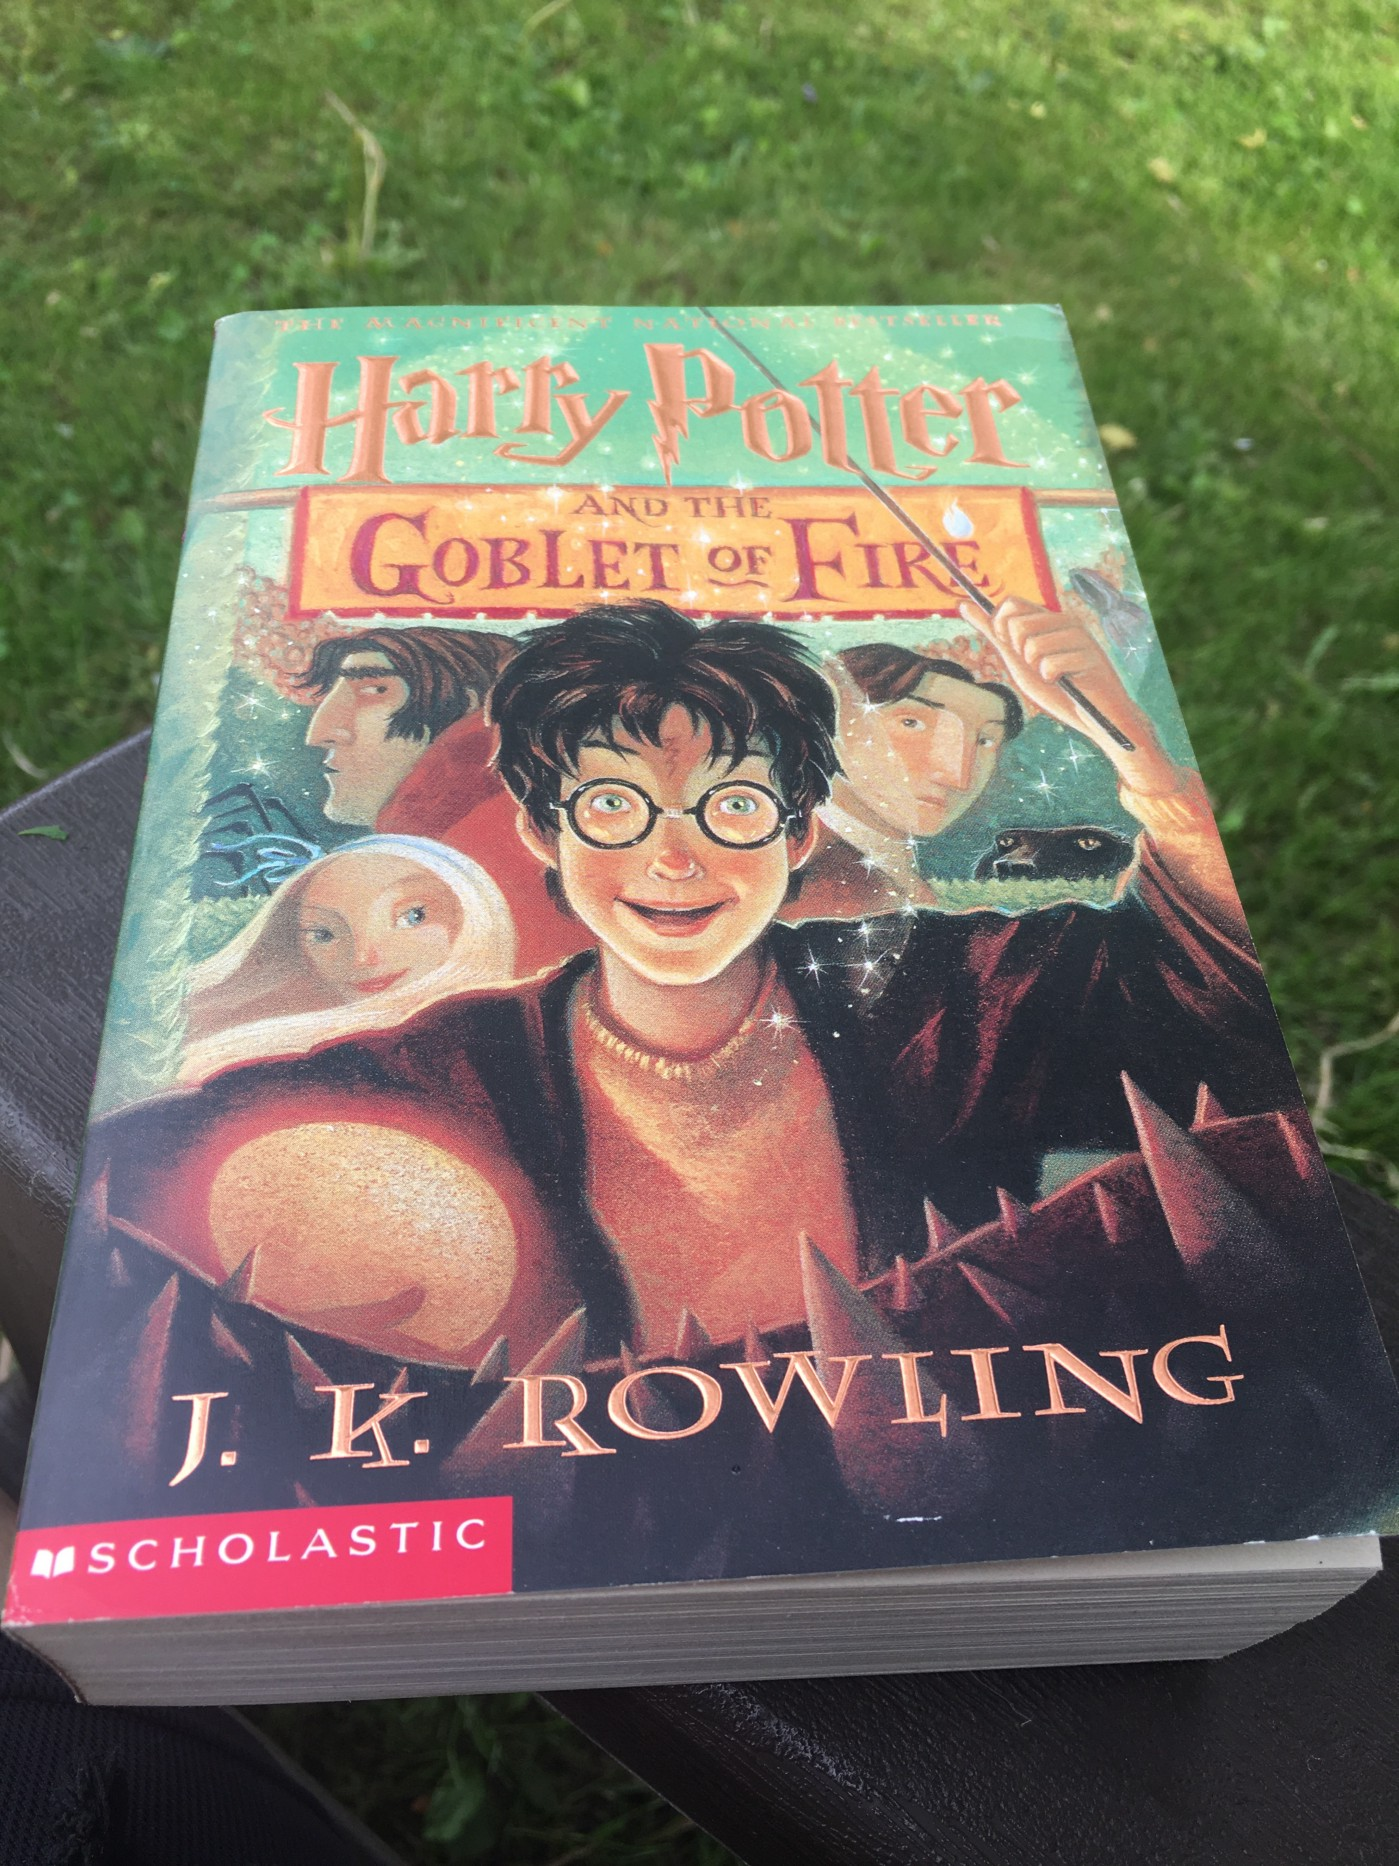 Paperback copy of Harry Potter and the Goblet of Fire